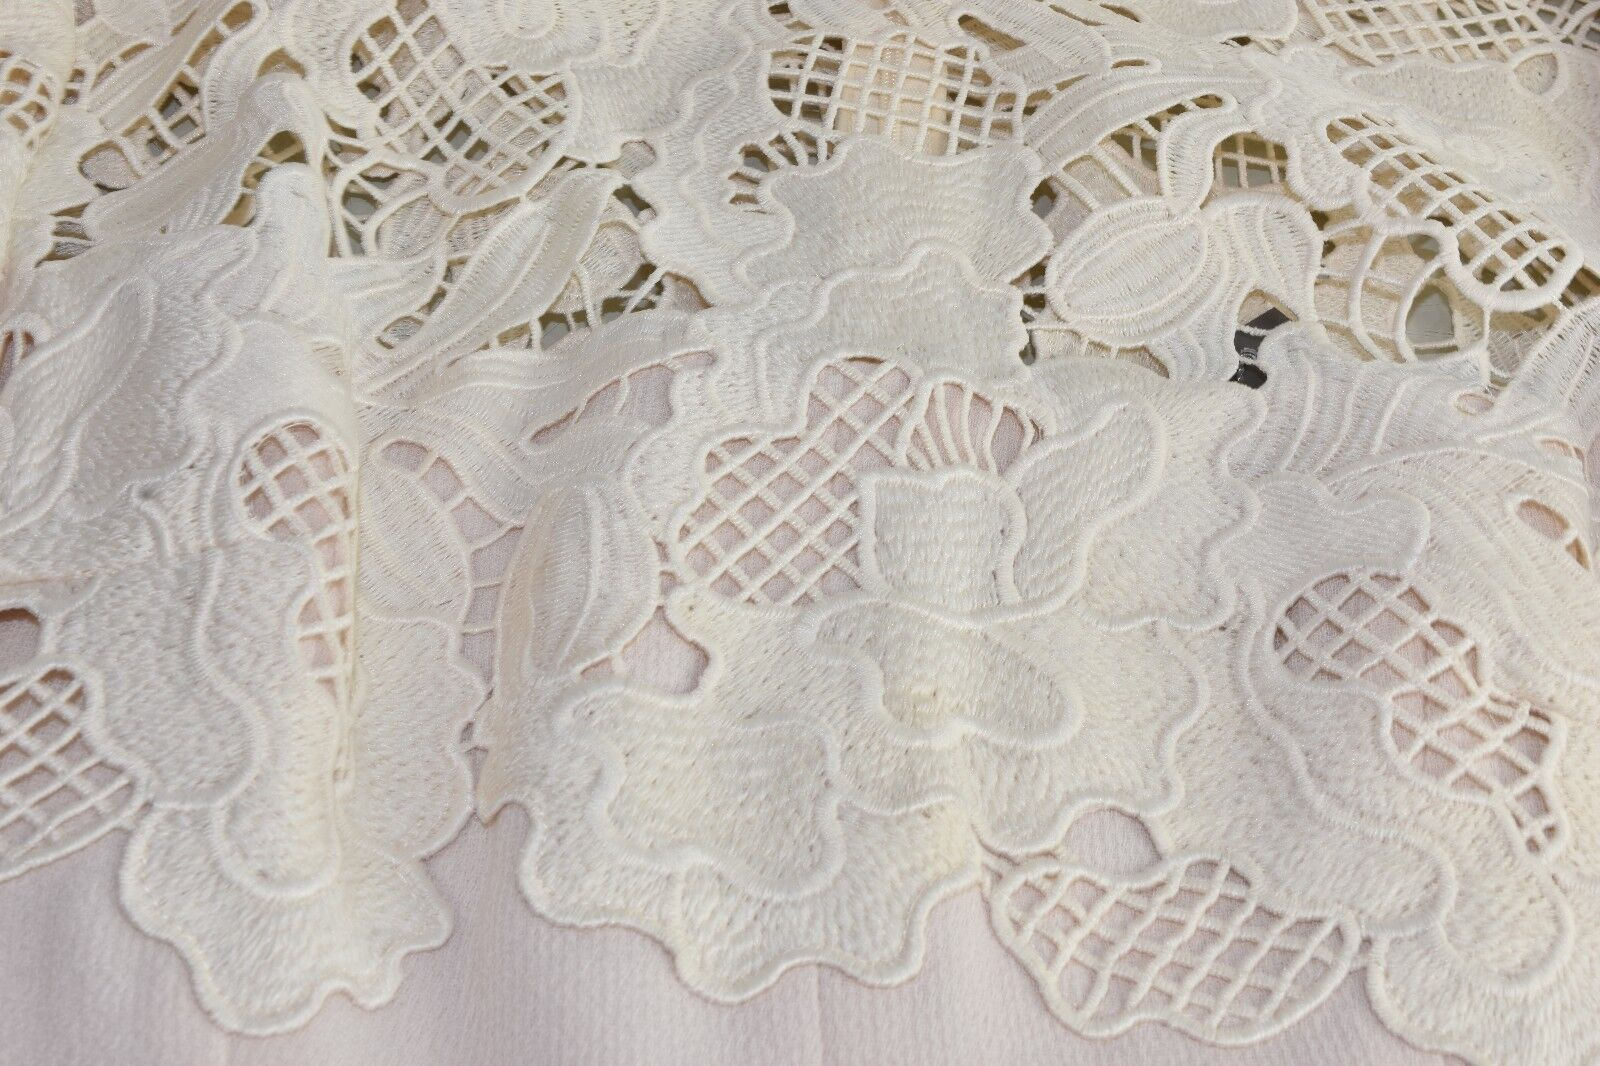 1595 NEW NEW NEW Lela pink Leaf Guipure Lace Placed Fitted Dress Petal 2 4 6 8 10 12 14 8662c6